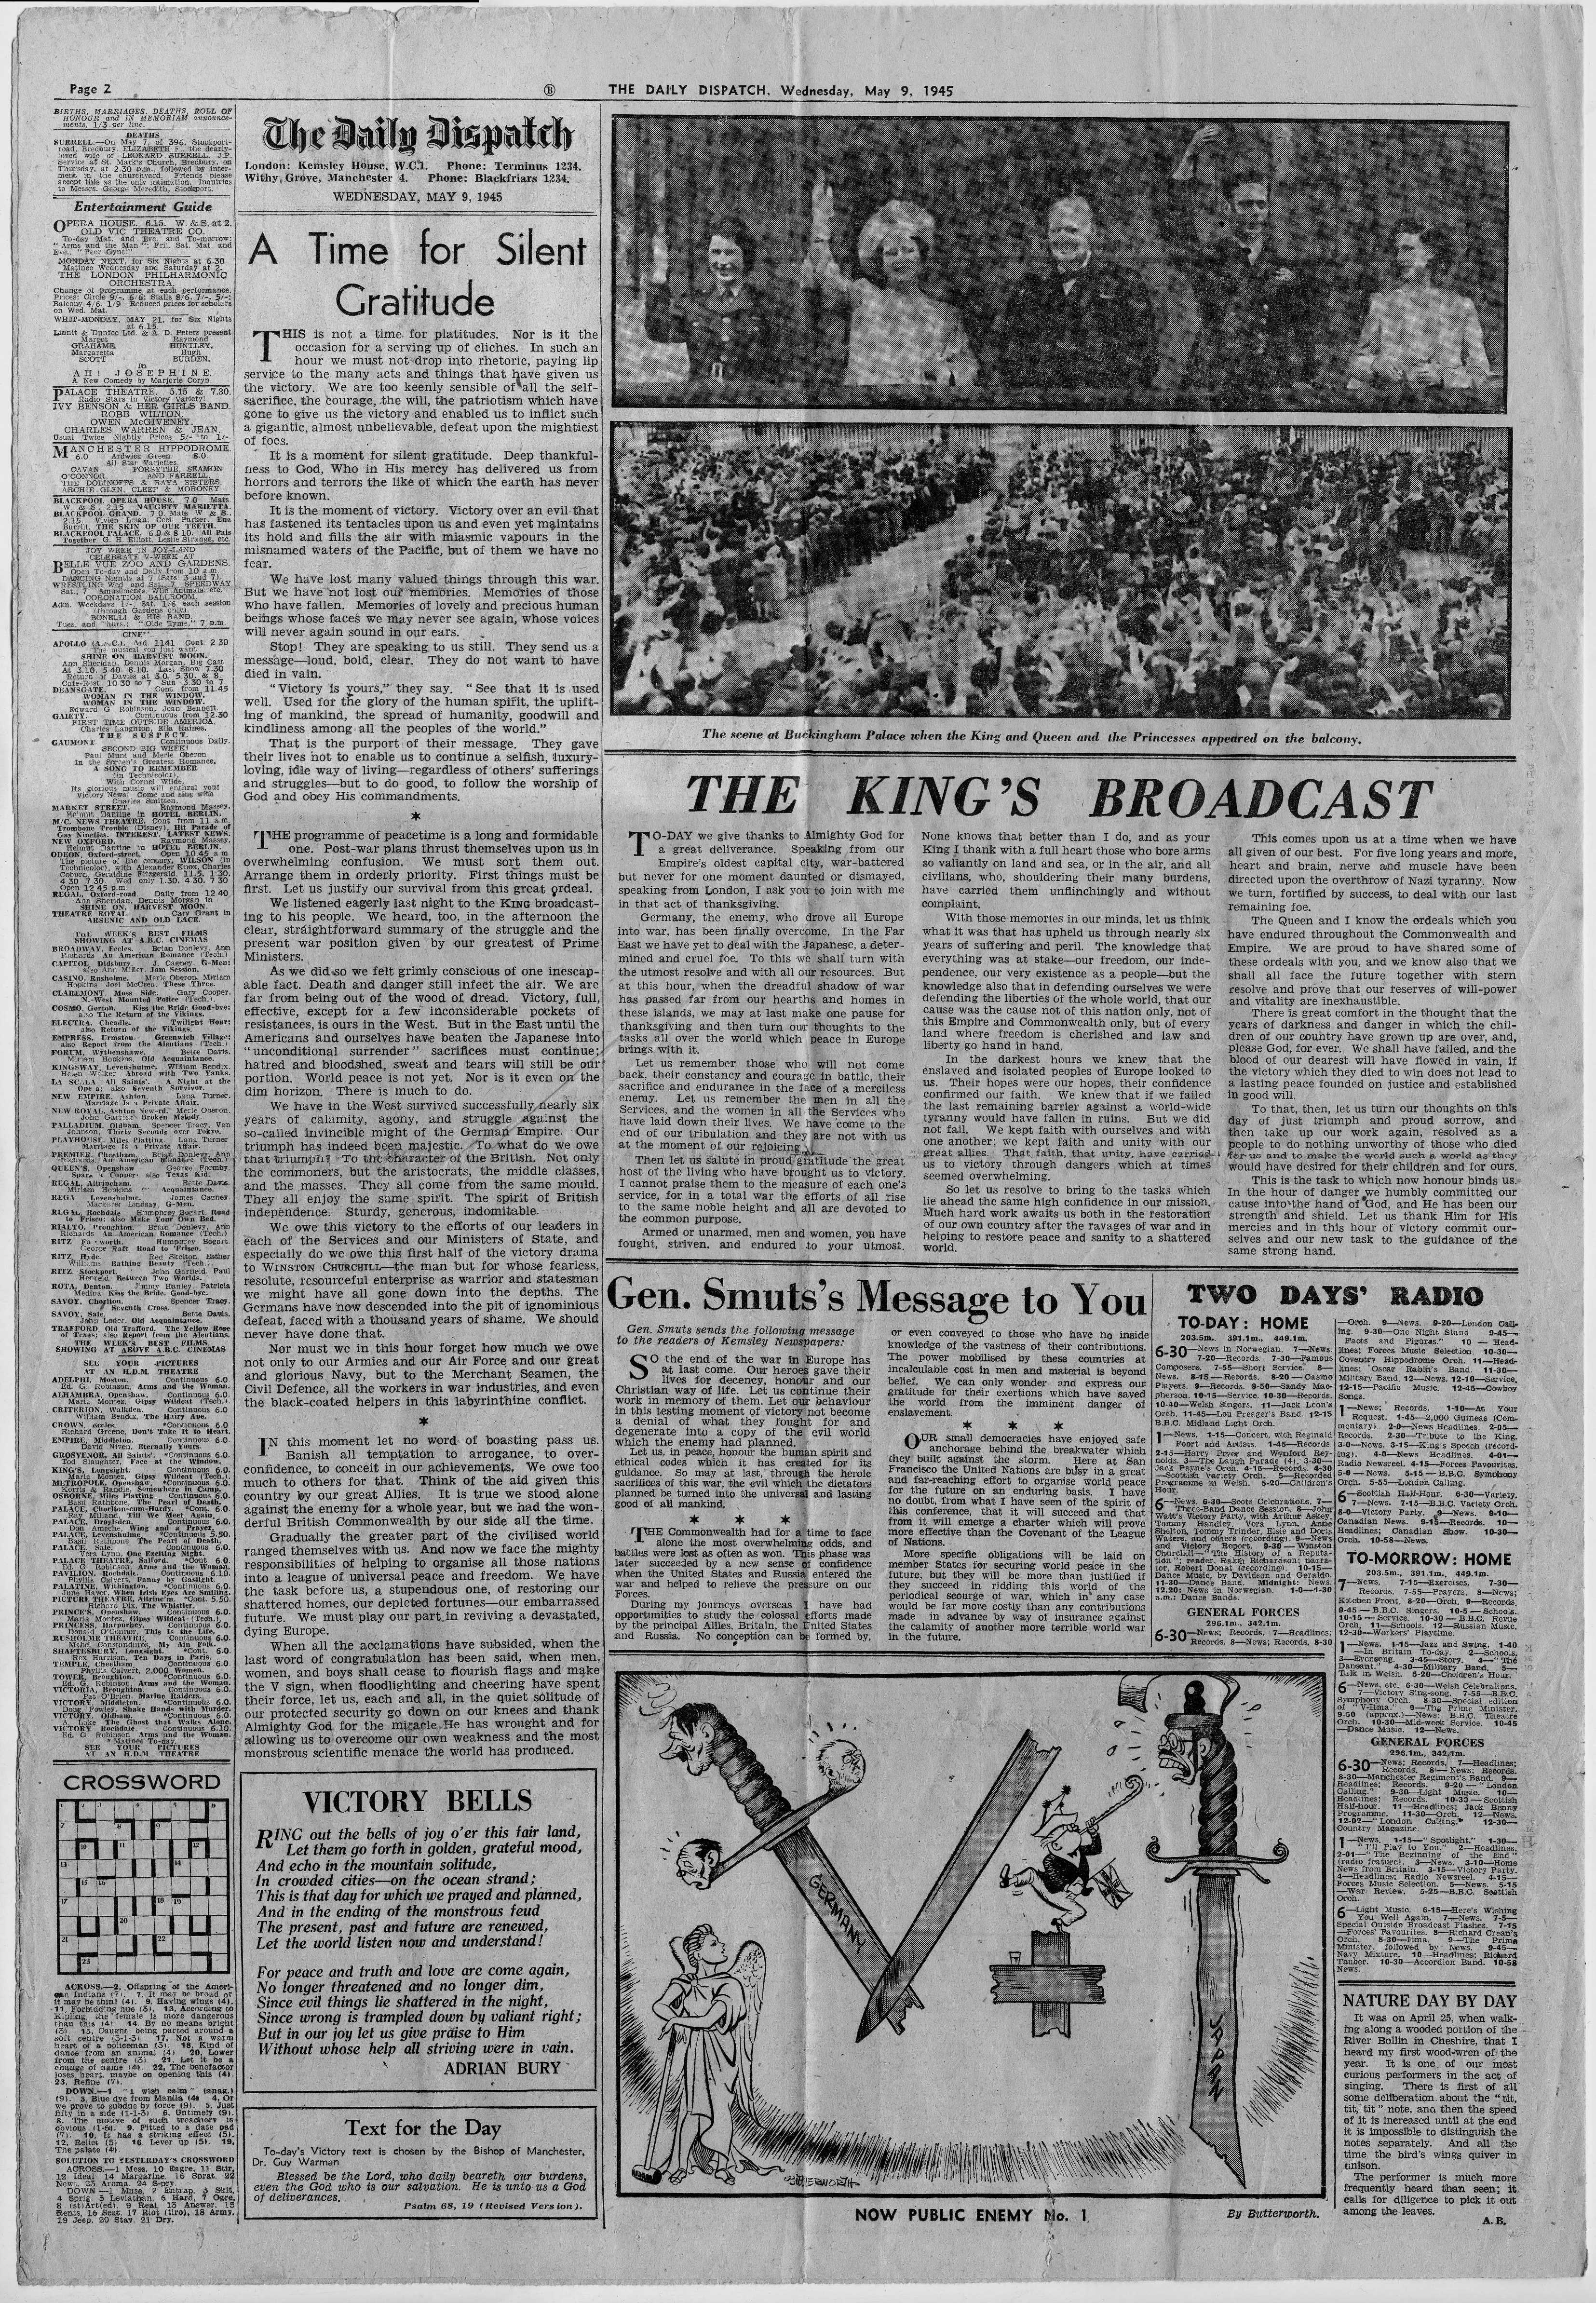 Wednesday, 9th May 1945 - The Daily Dispatch, page 2